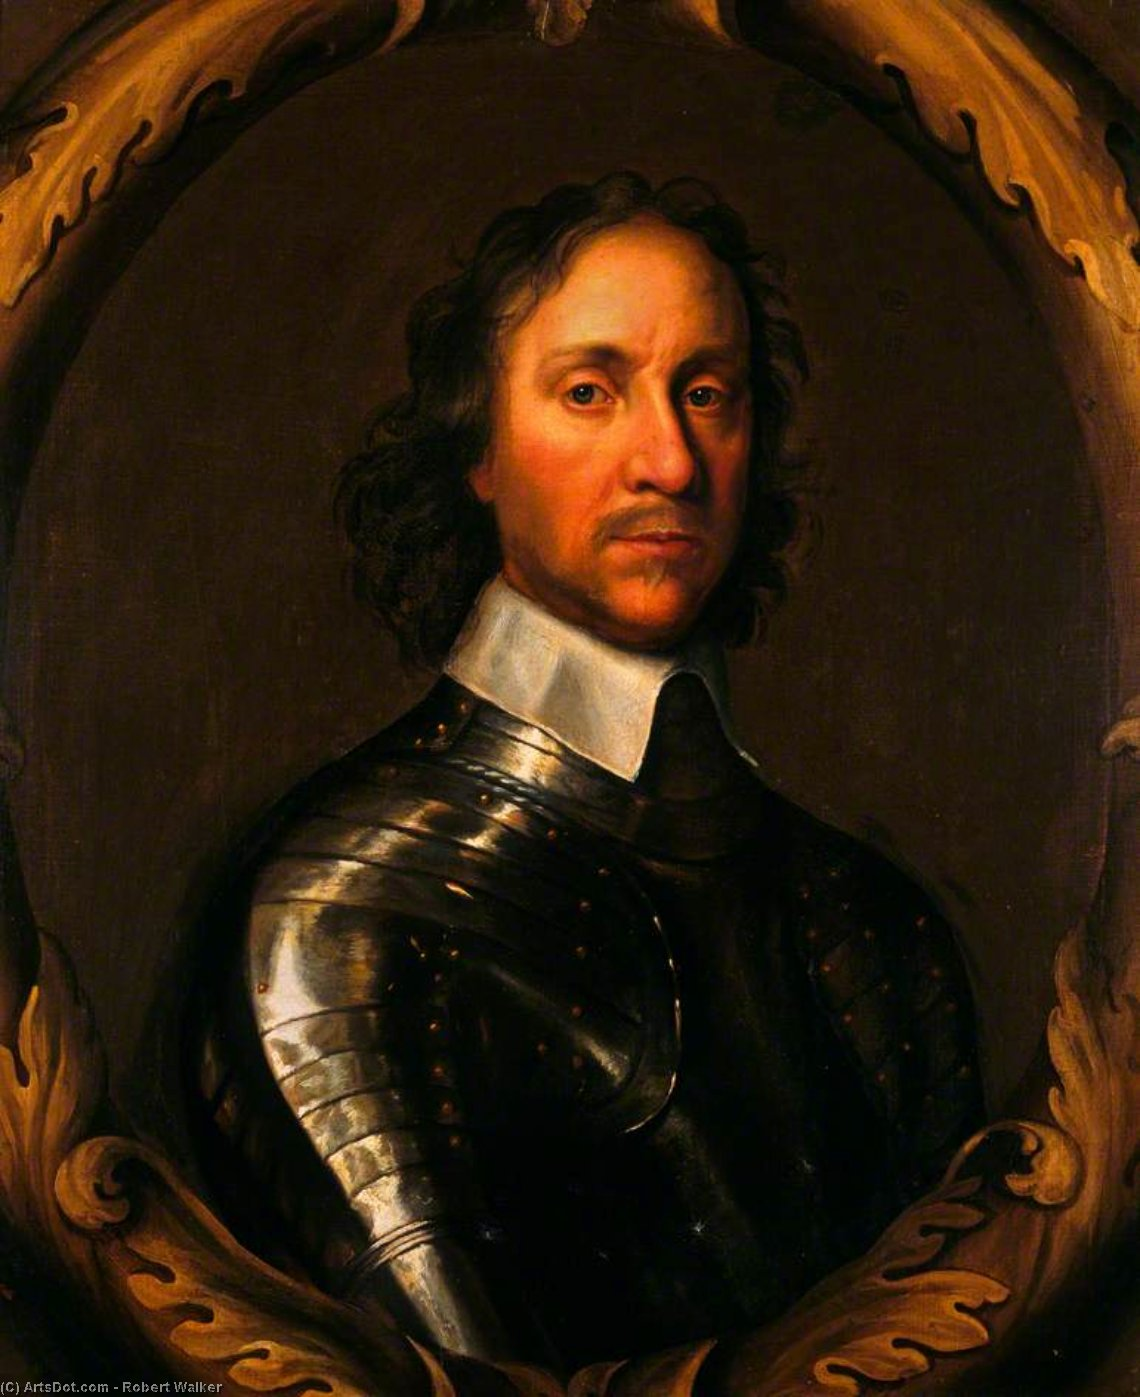 a biography of oliver cromwell a politician 23-3-2018 edward incredibles essay the montagu, 2nd earl of manchester: a list of famous people throughout history famous historical figures a biography of oliver cromwell a politician.